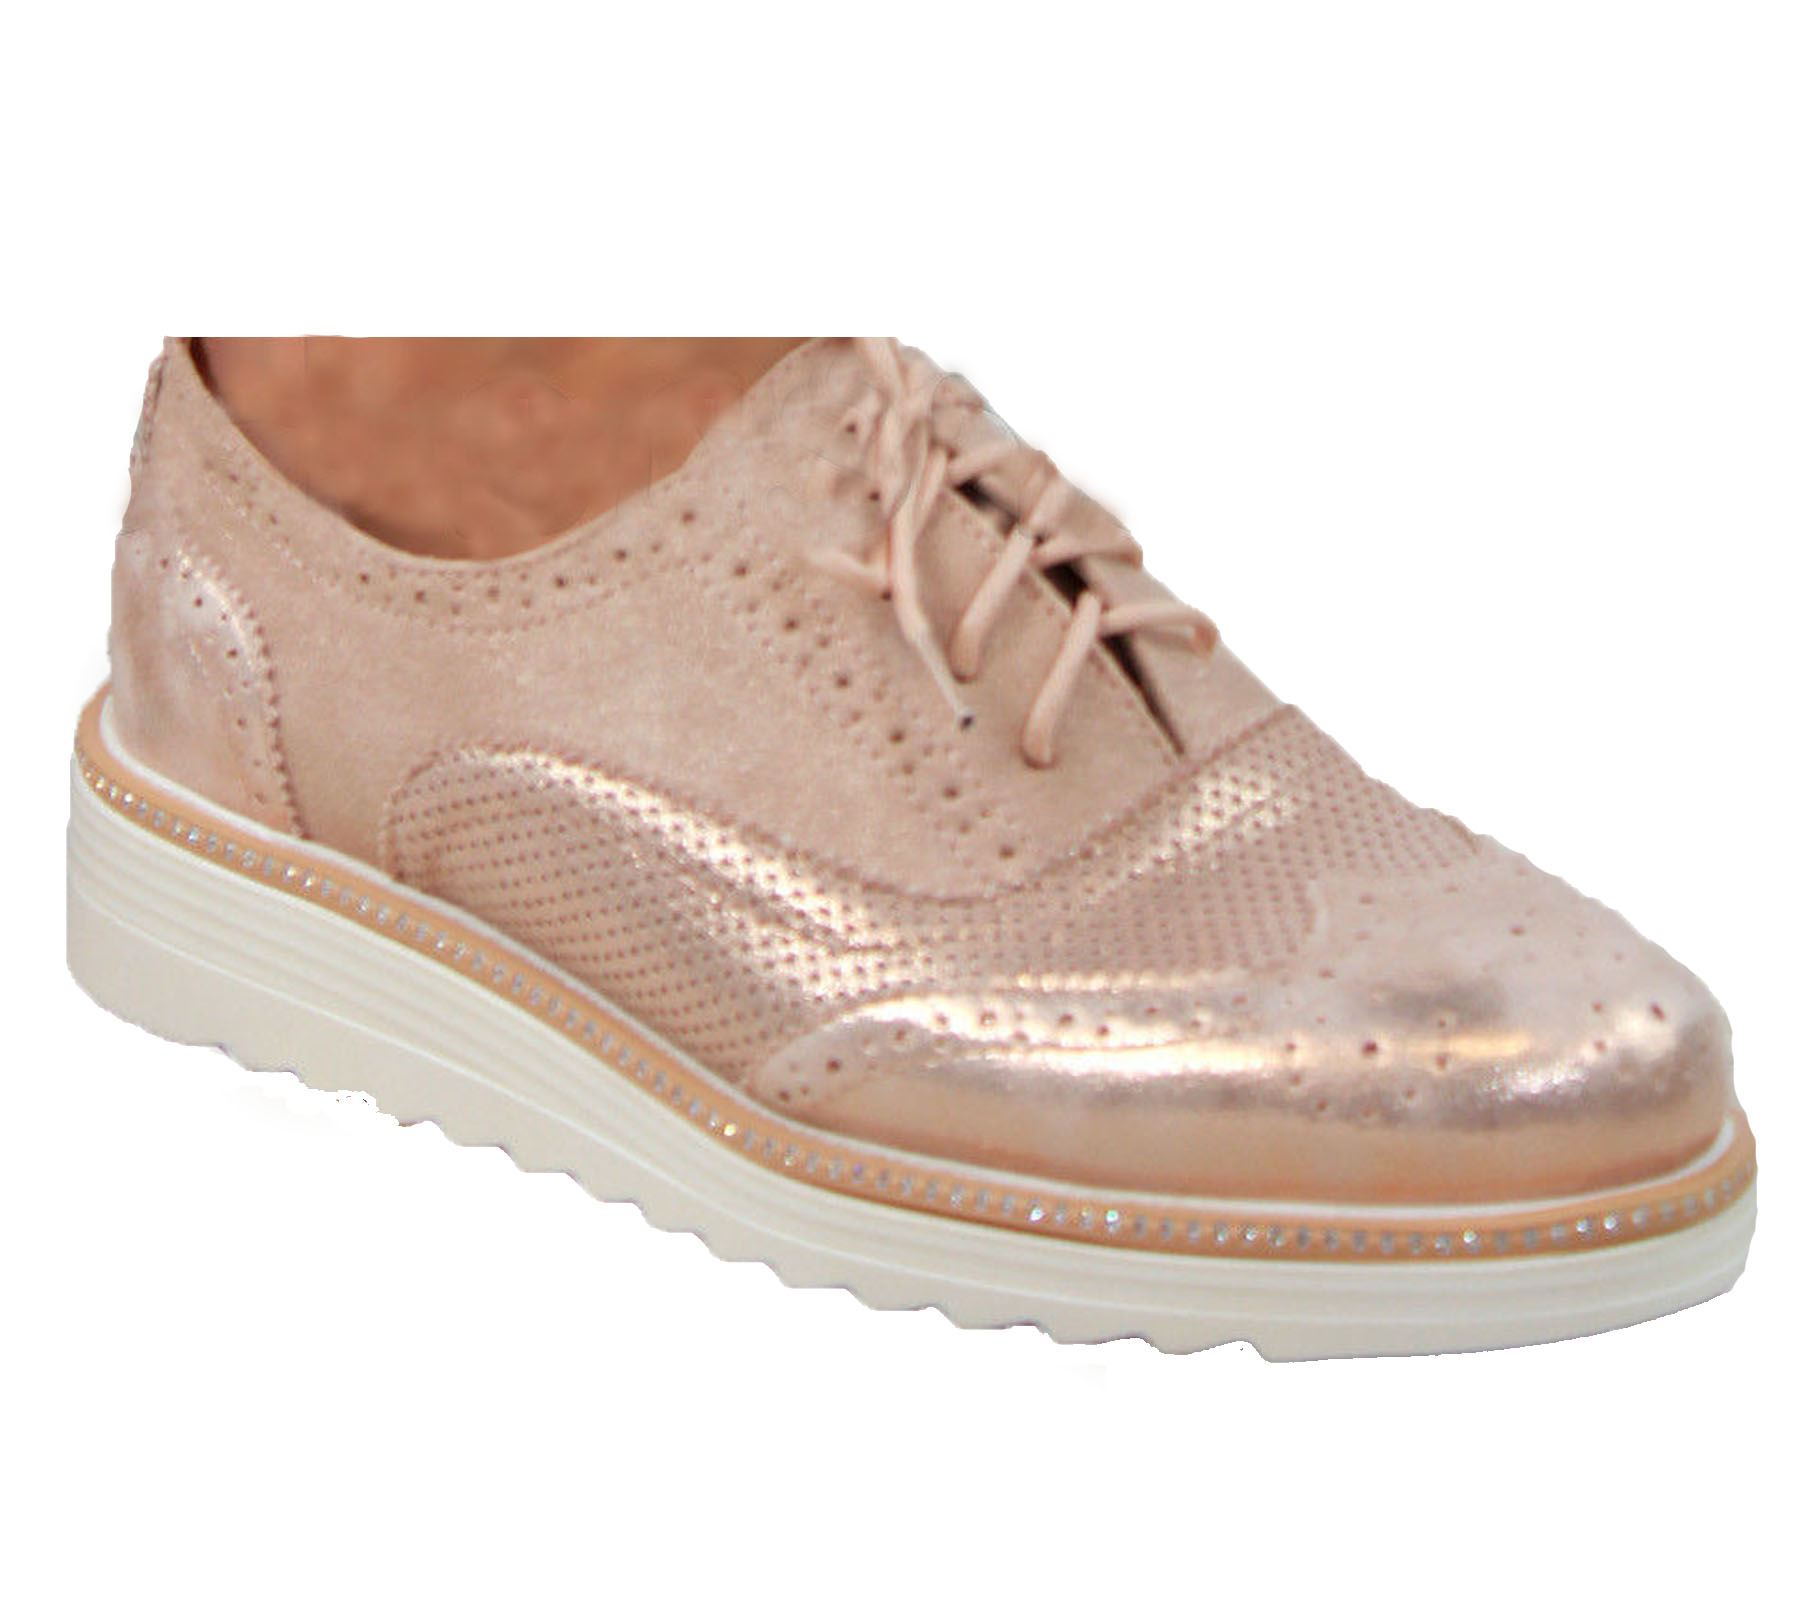 Ladies-Brogue-Lace-Up-Shoes-Womens-Oxford-Smart-Office-Loafers-Shoes miniatura 37